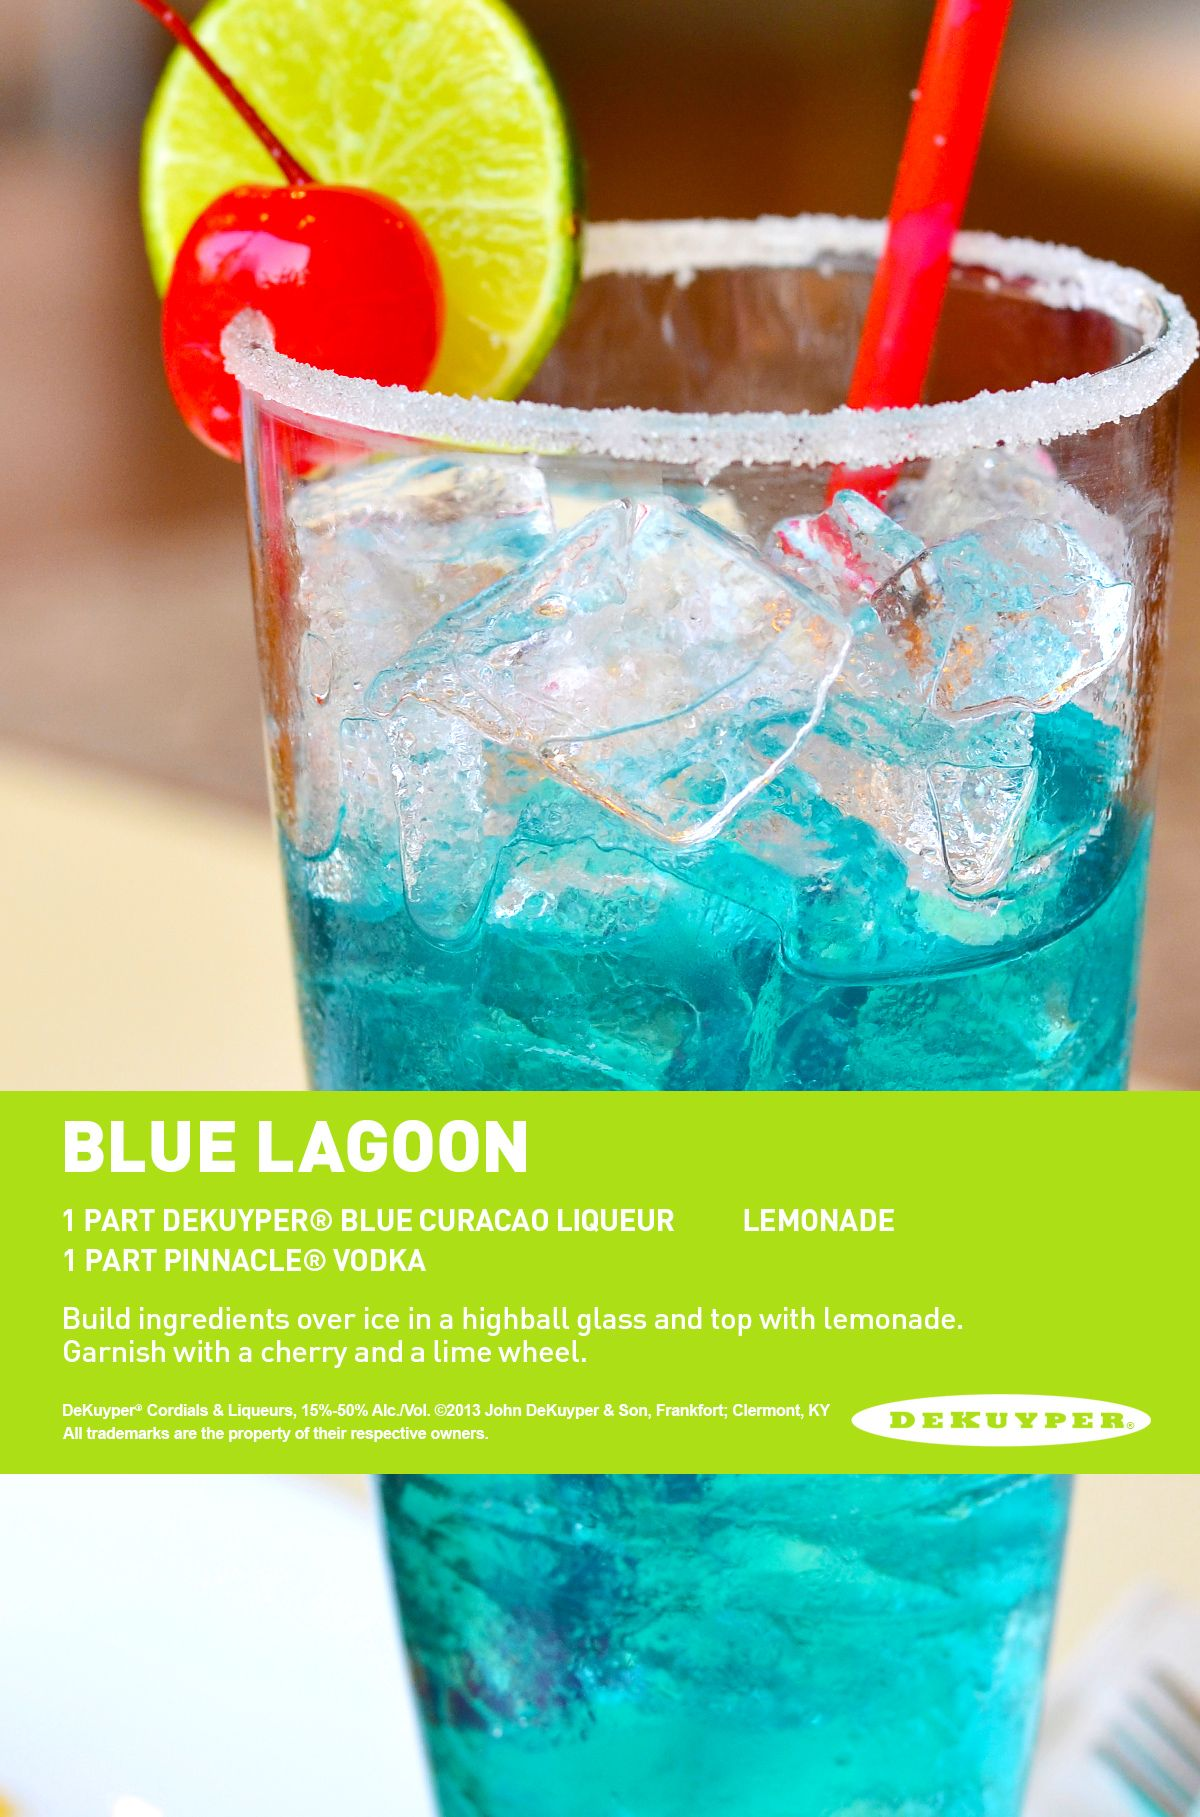 Blue lagoon ingredients 1 part blue curacao